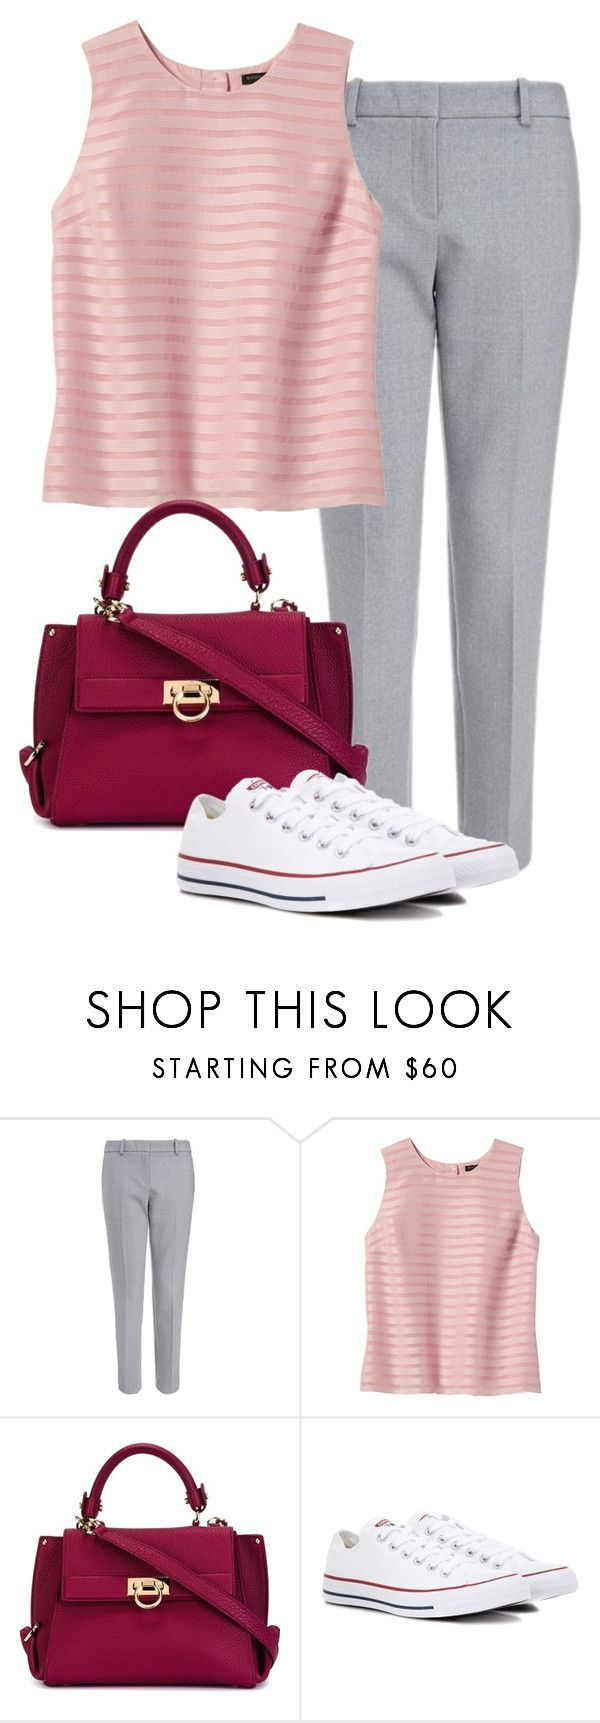 """Untitled #701"" by indirareeves on Polyvore featuring Banana Republic, Salvatore Ferragamo and Converse"